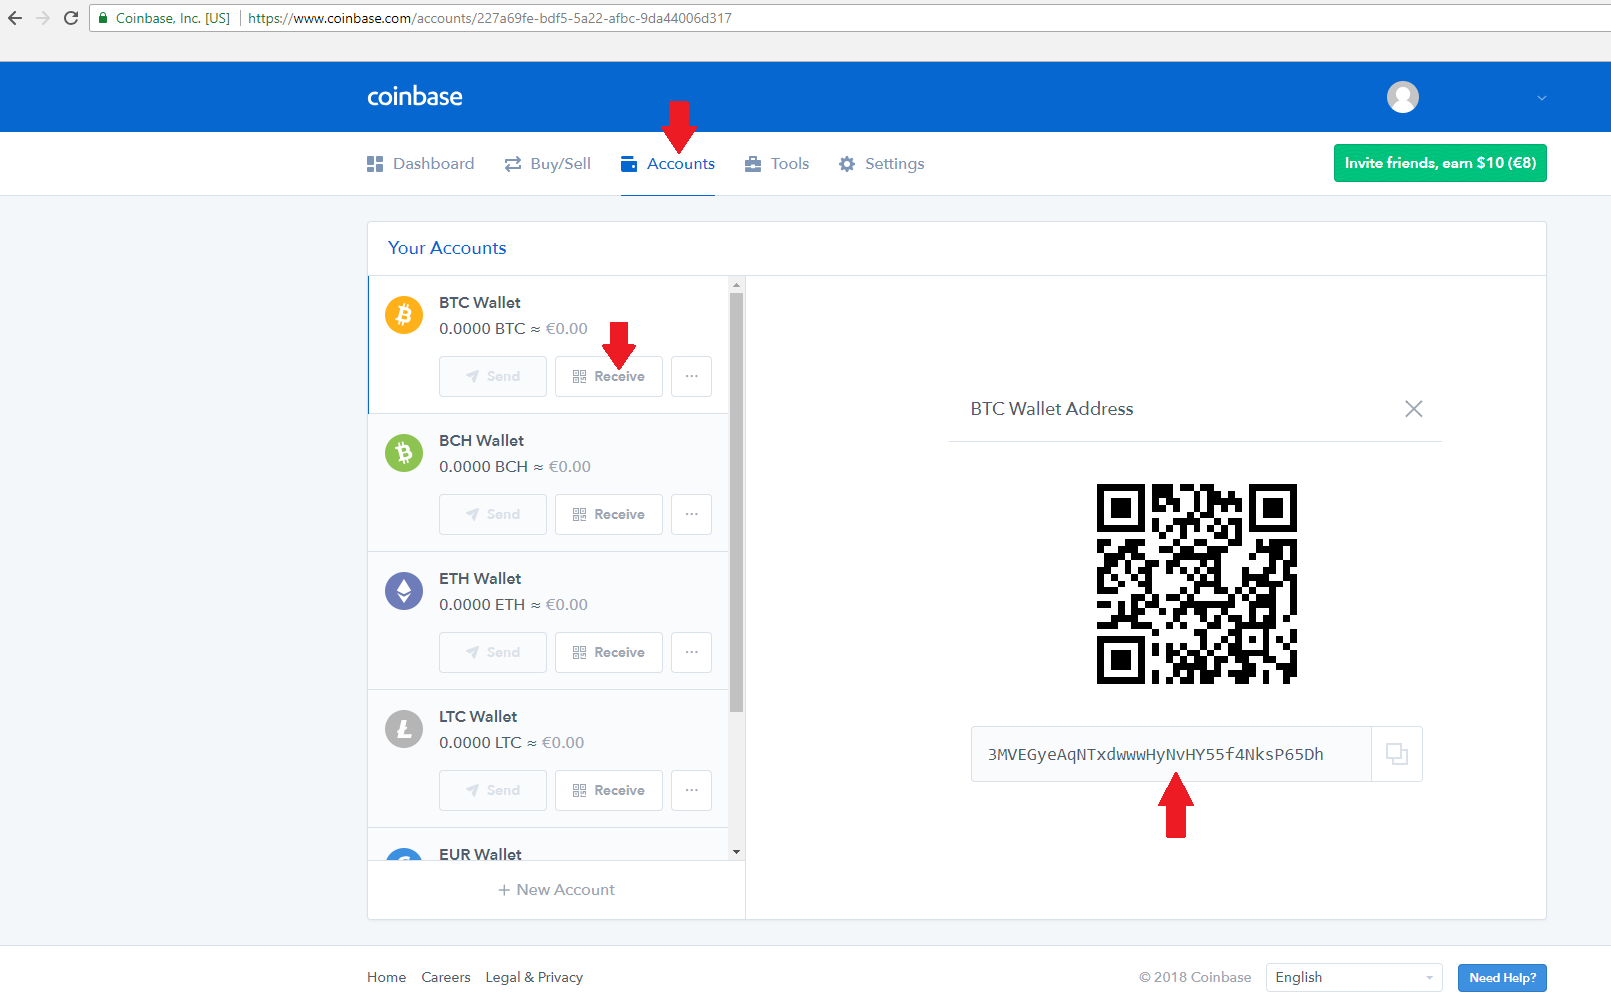 coinbase accounts btc wallet receive find bitcoin address for your account